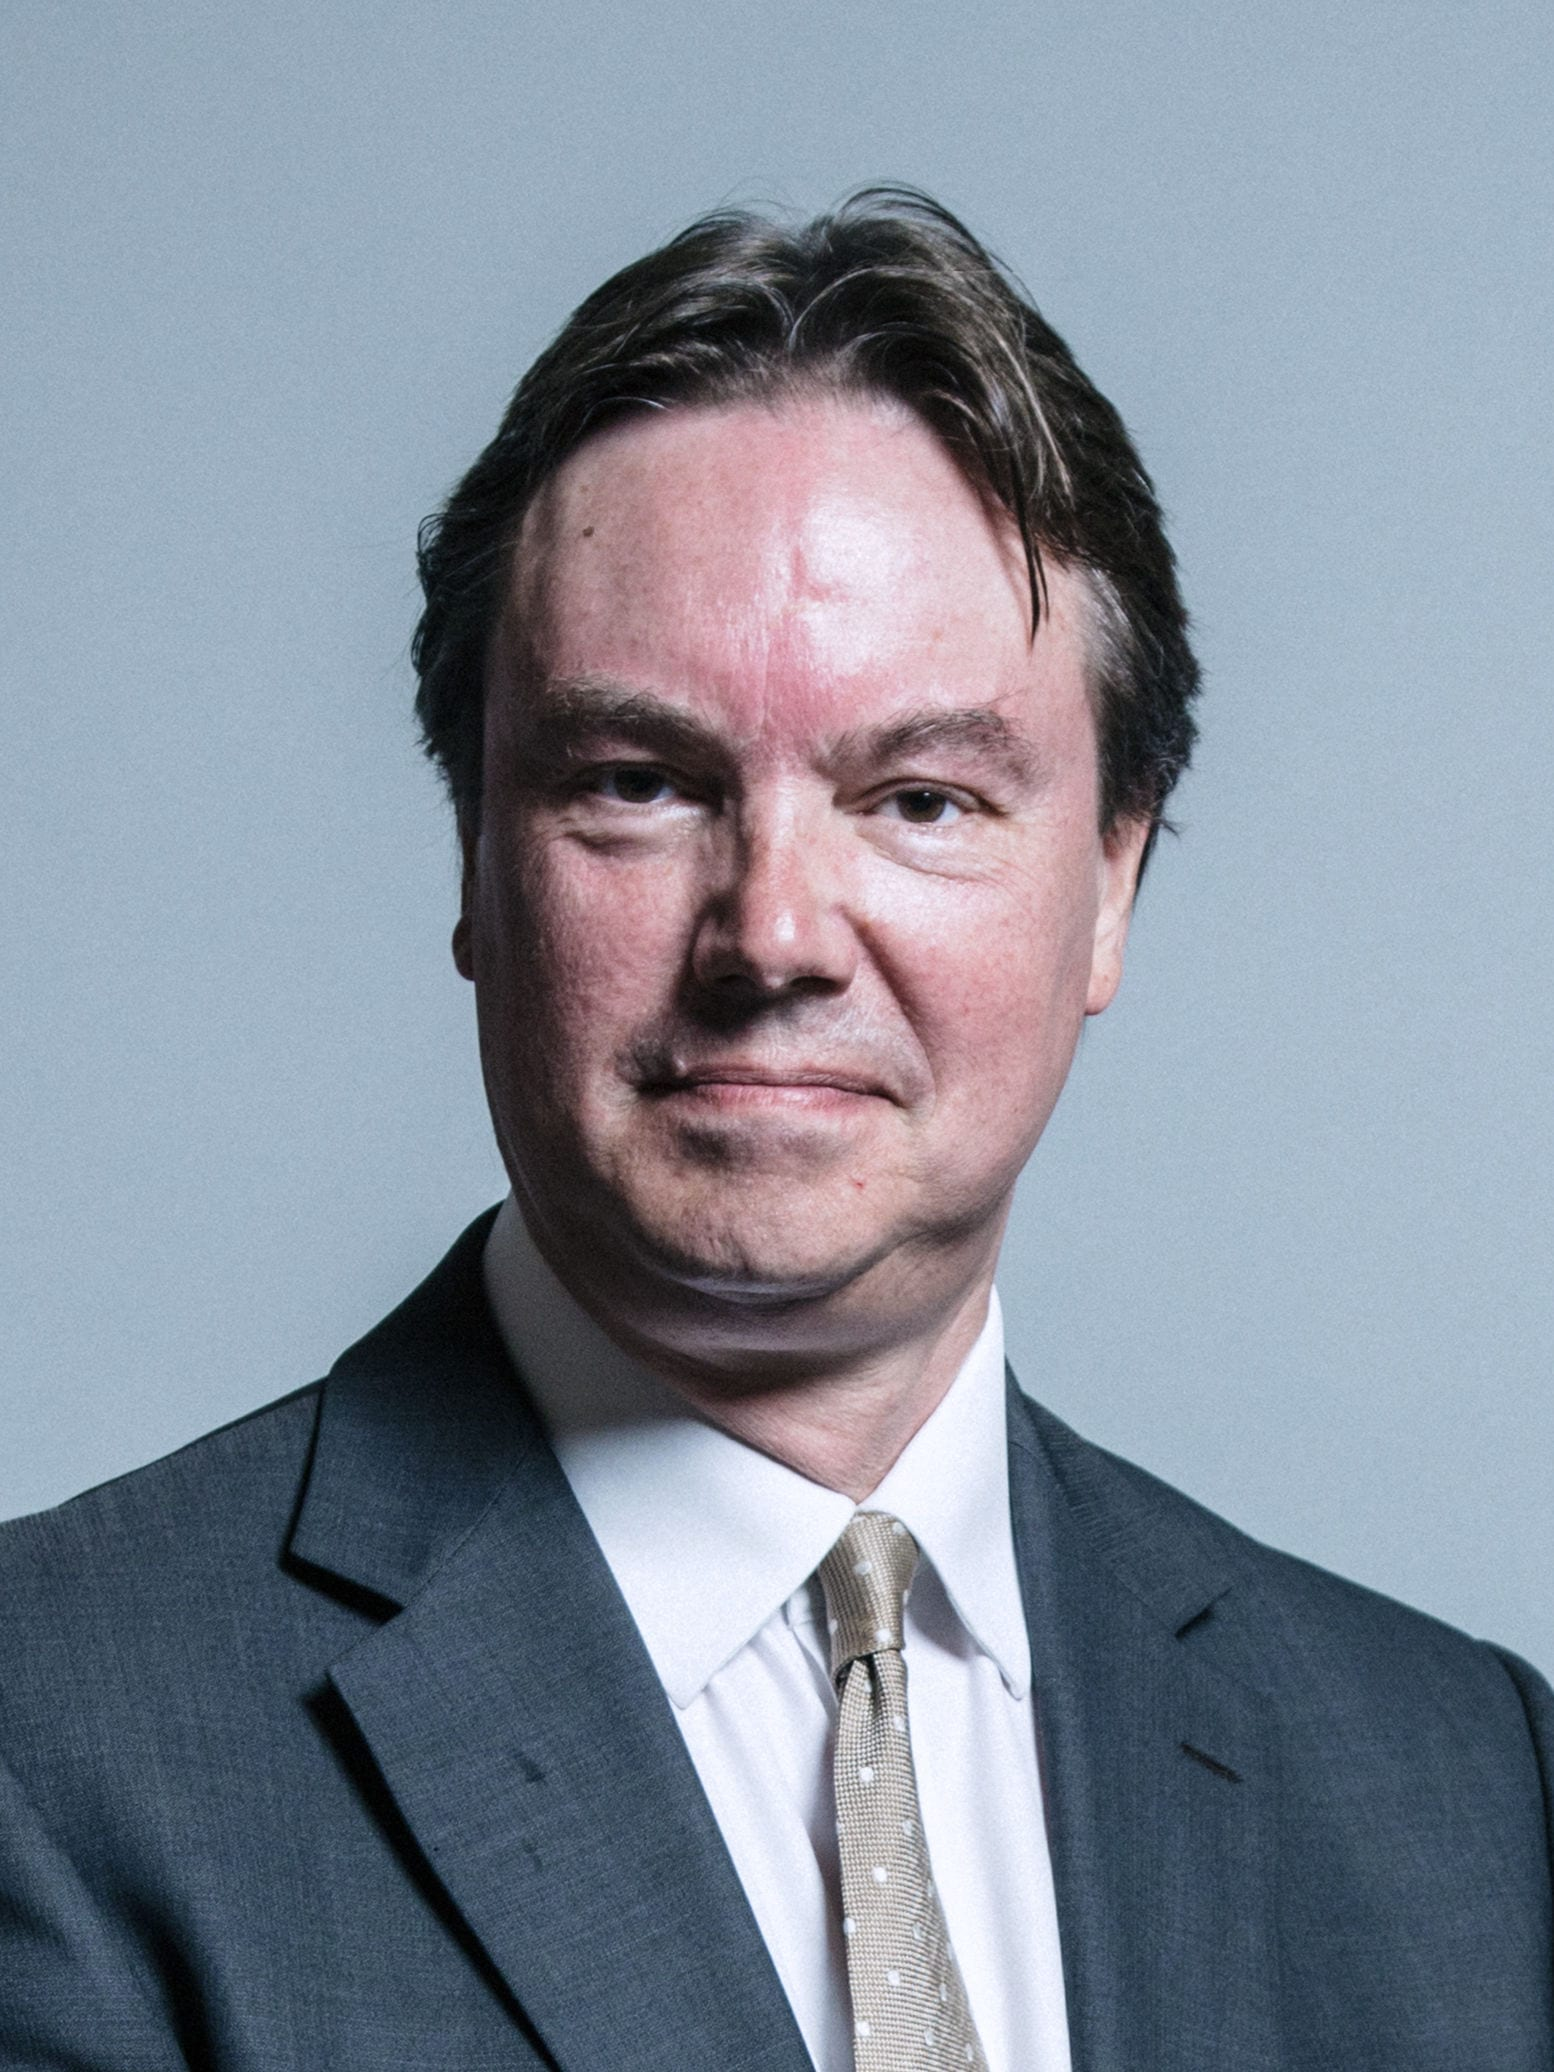 Jonathan Lord, former MP for Woking - headshot